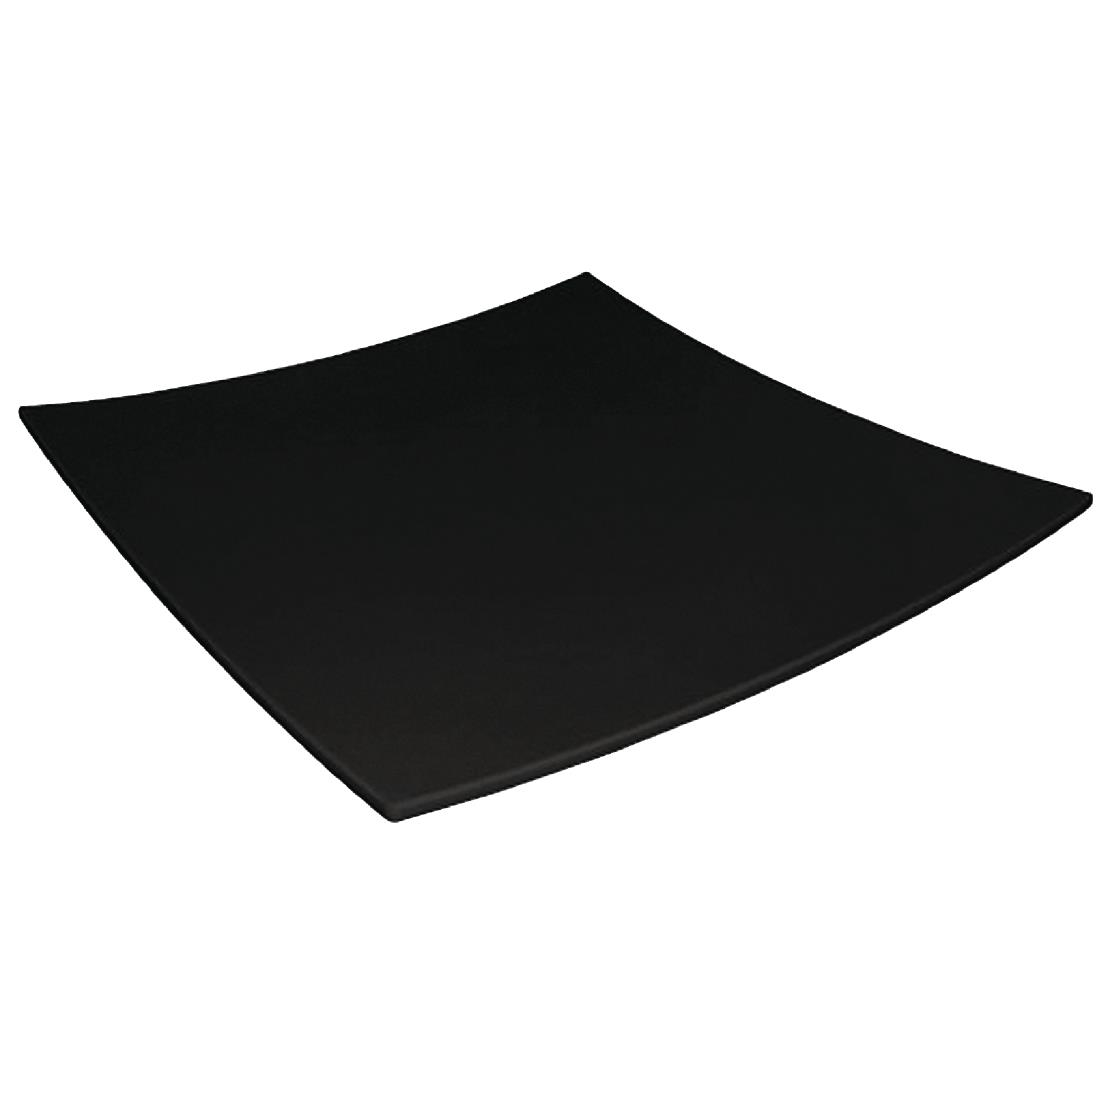 Image of Curved Square Melamine Plate Black 300mm